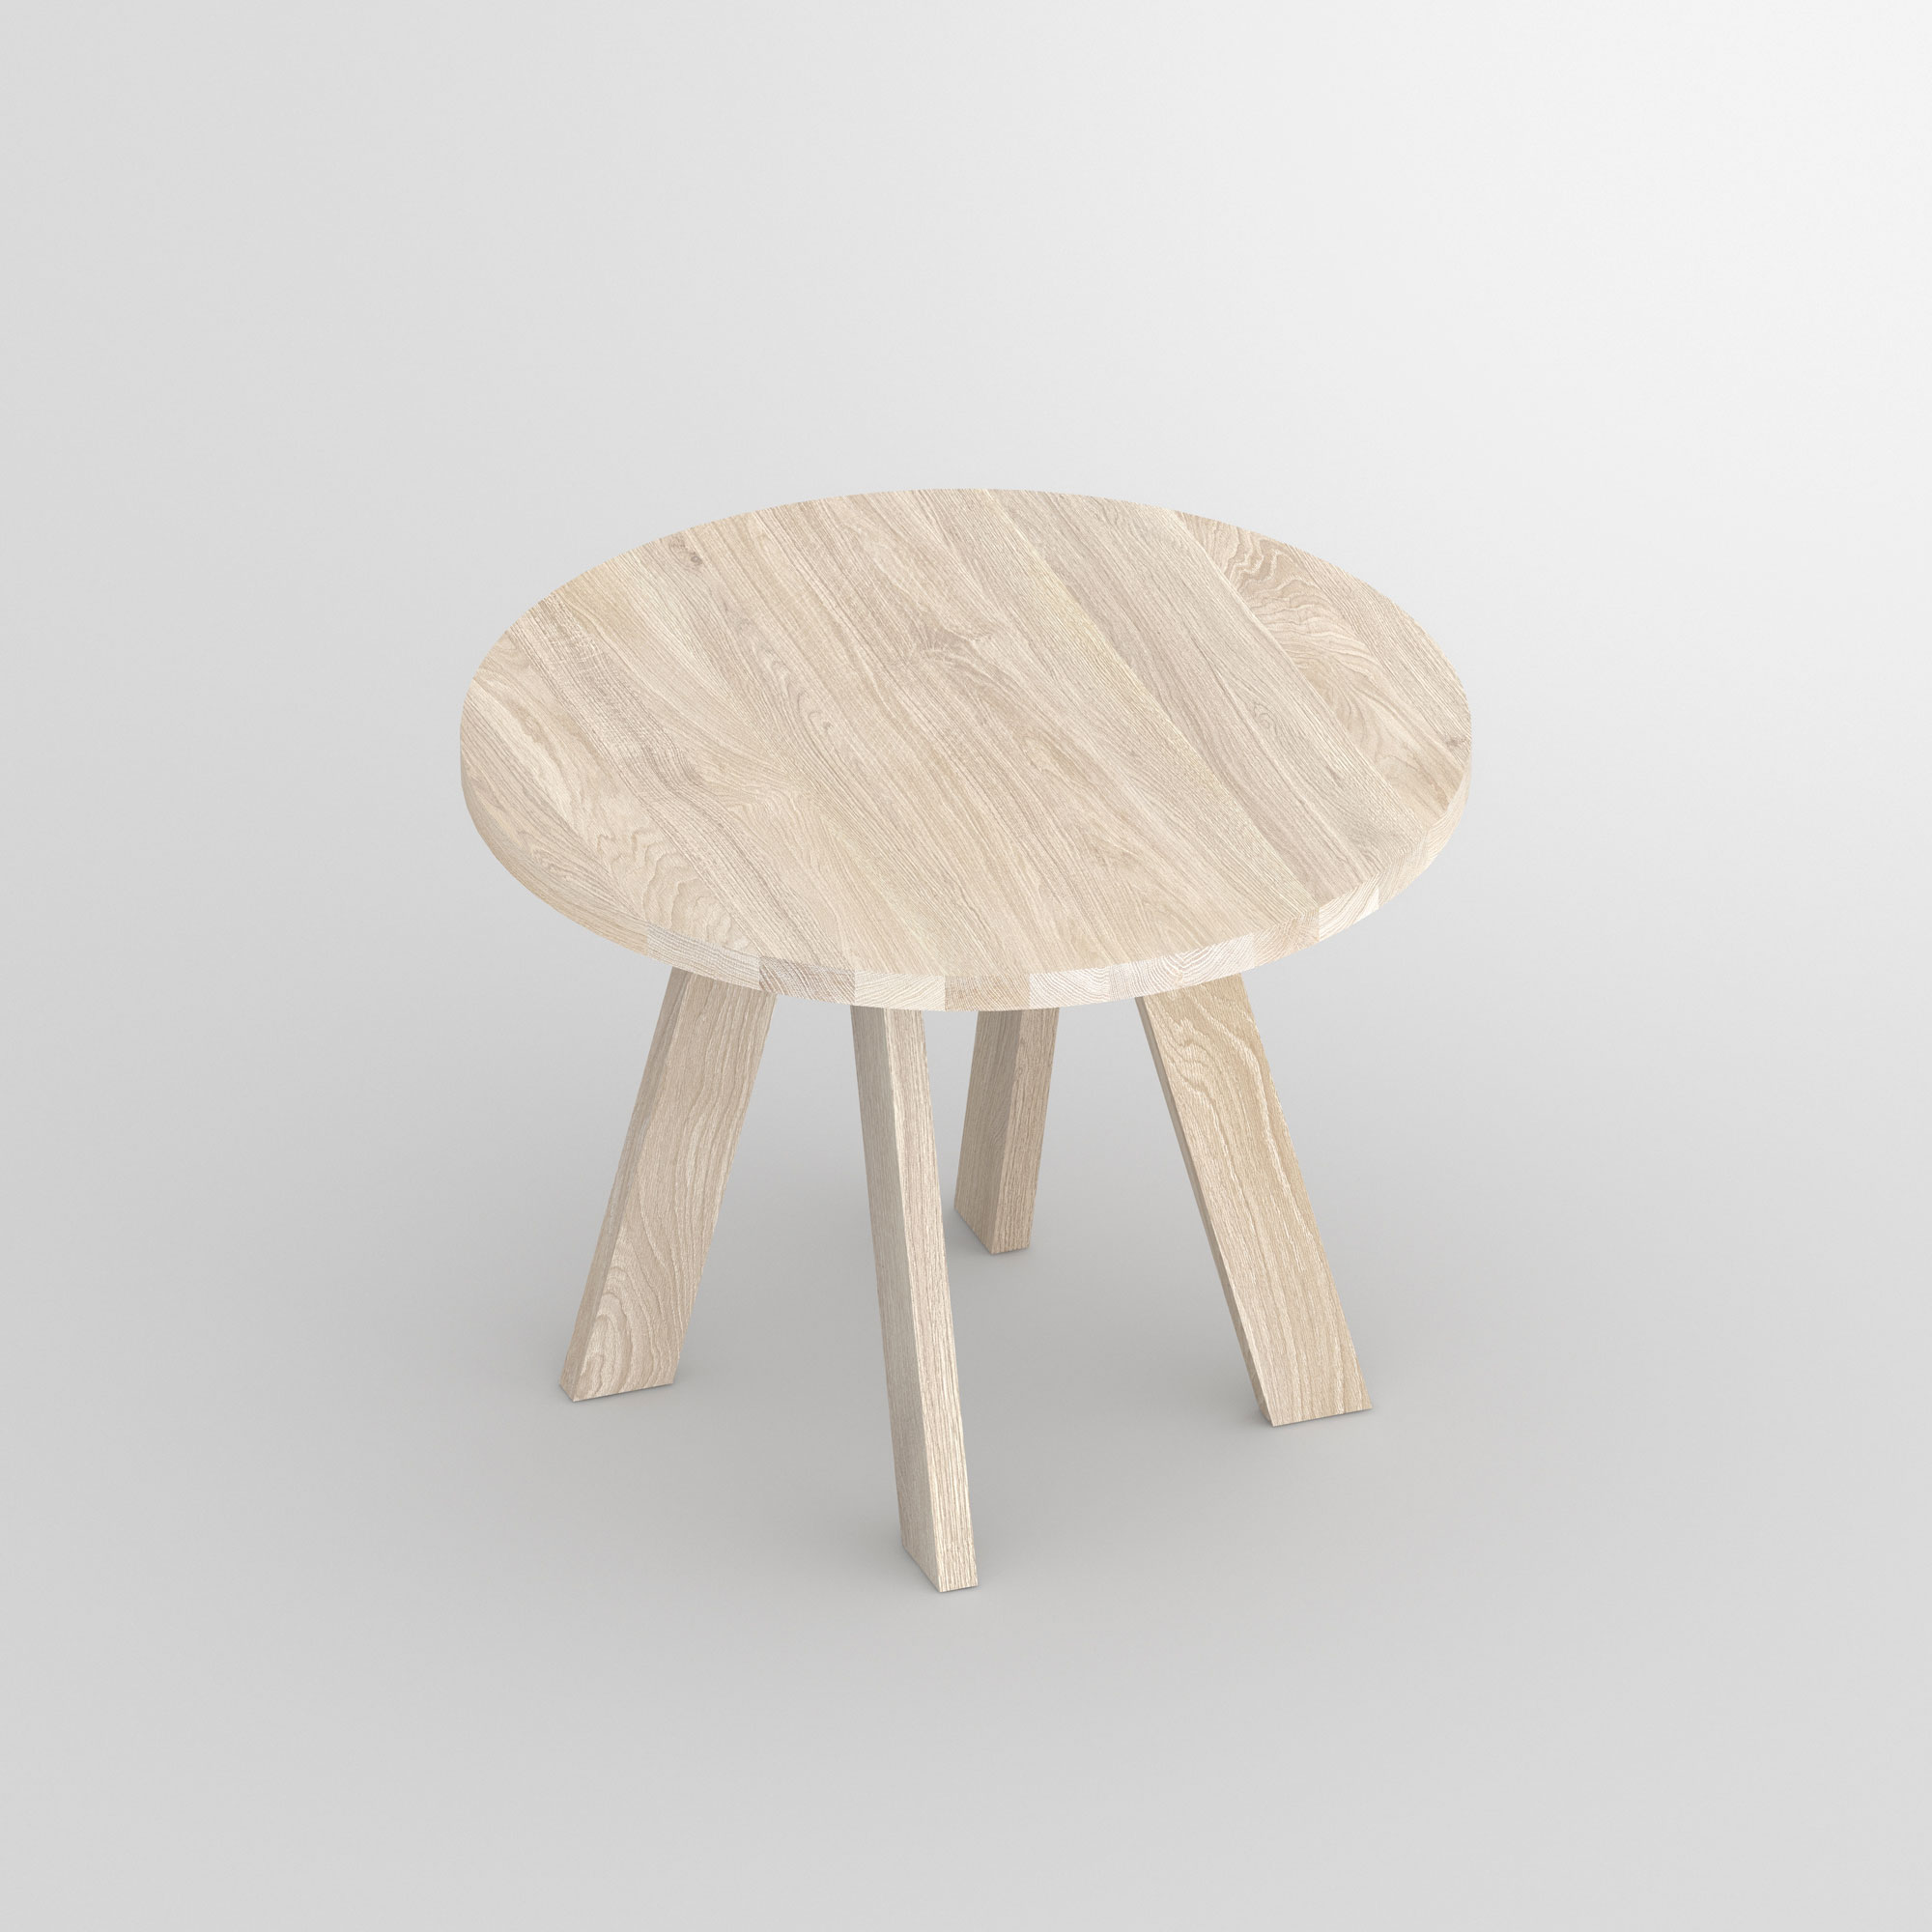 Designer table Round ZIRKEL cam3 custom made in solid wood by vitamin design